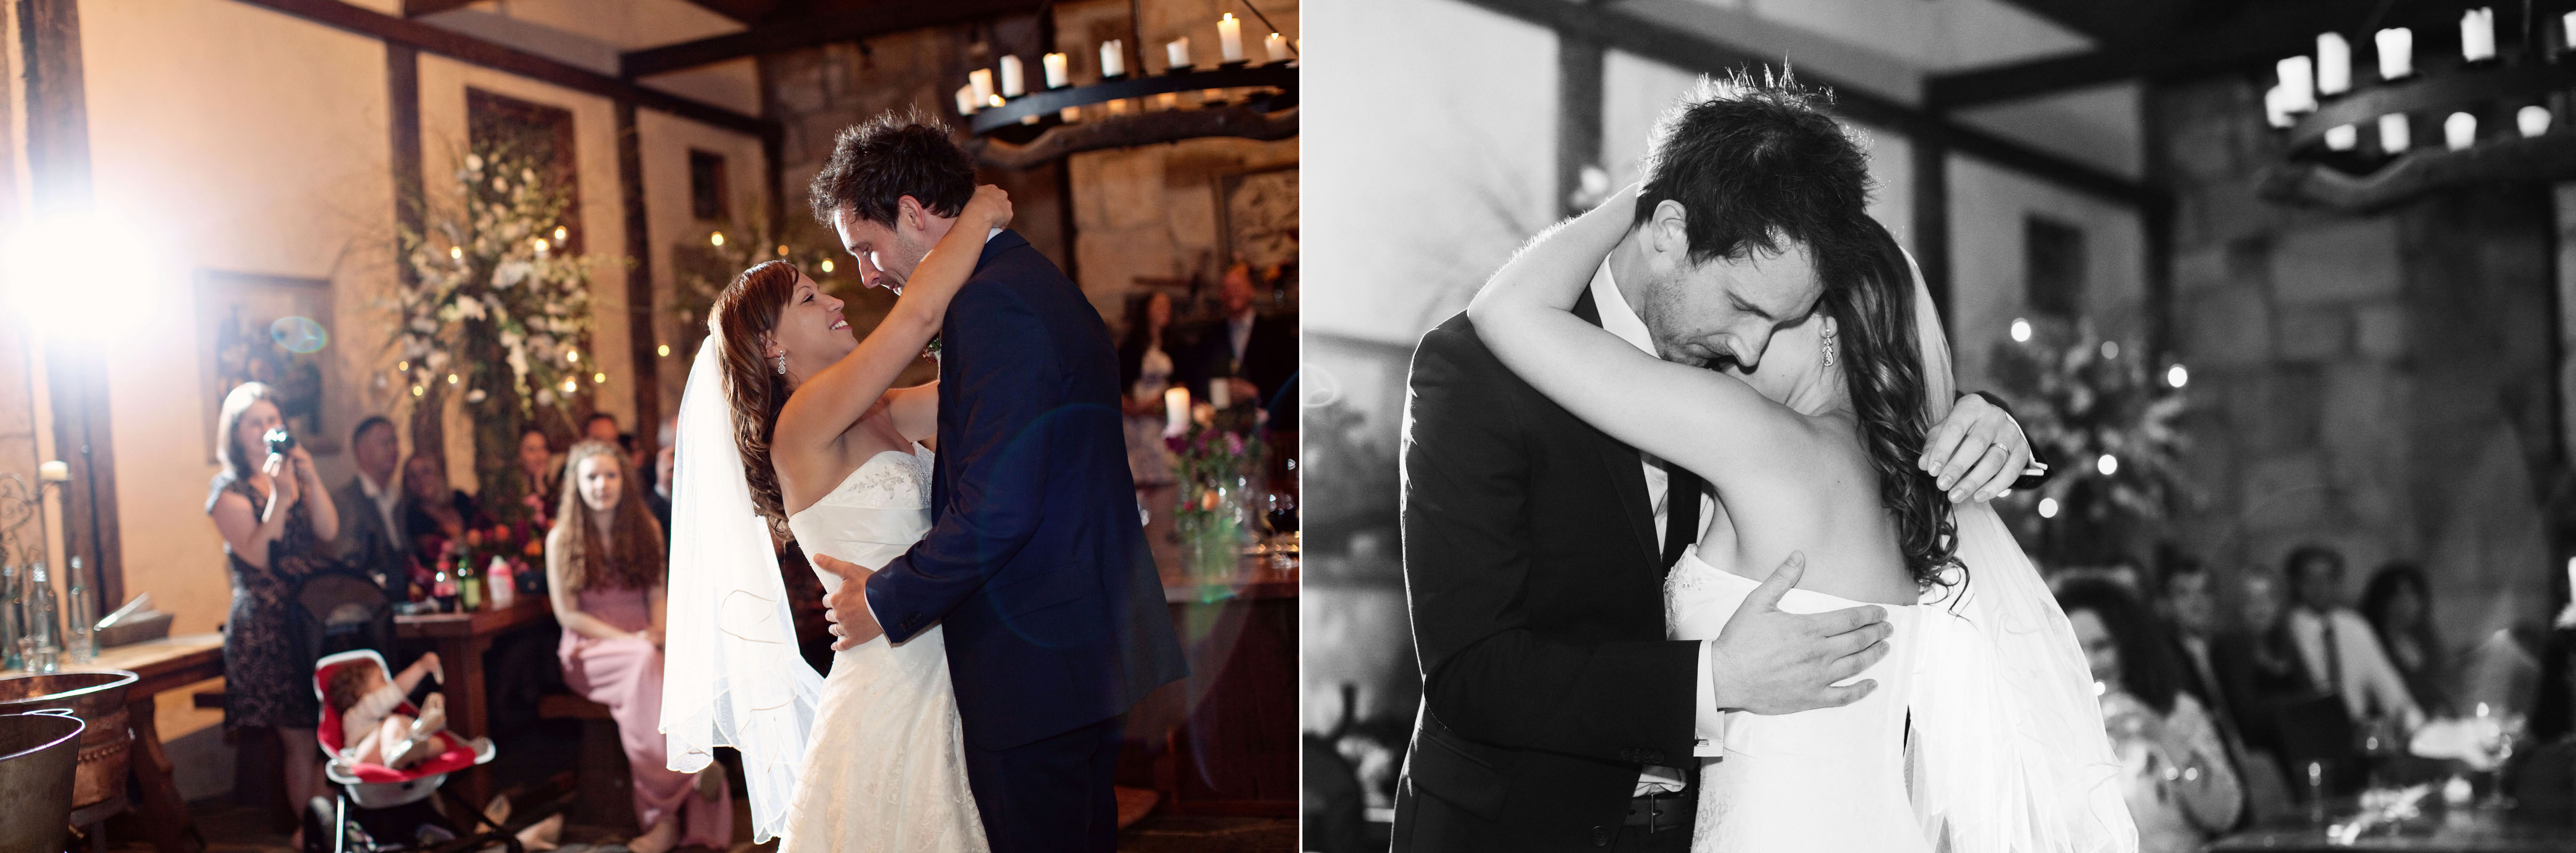 photos of first dance at winery in Yarra valley